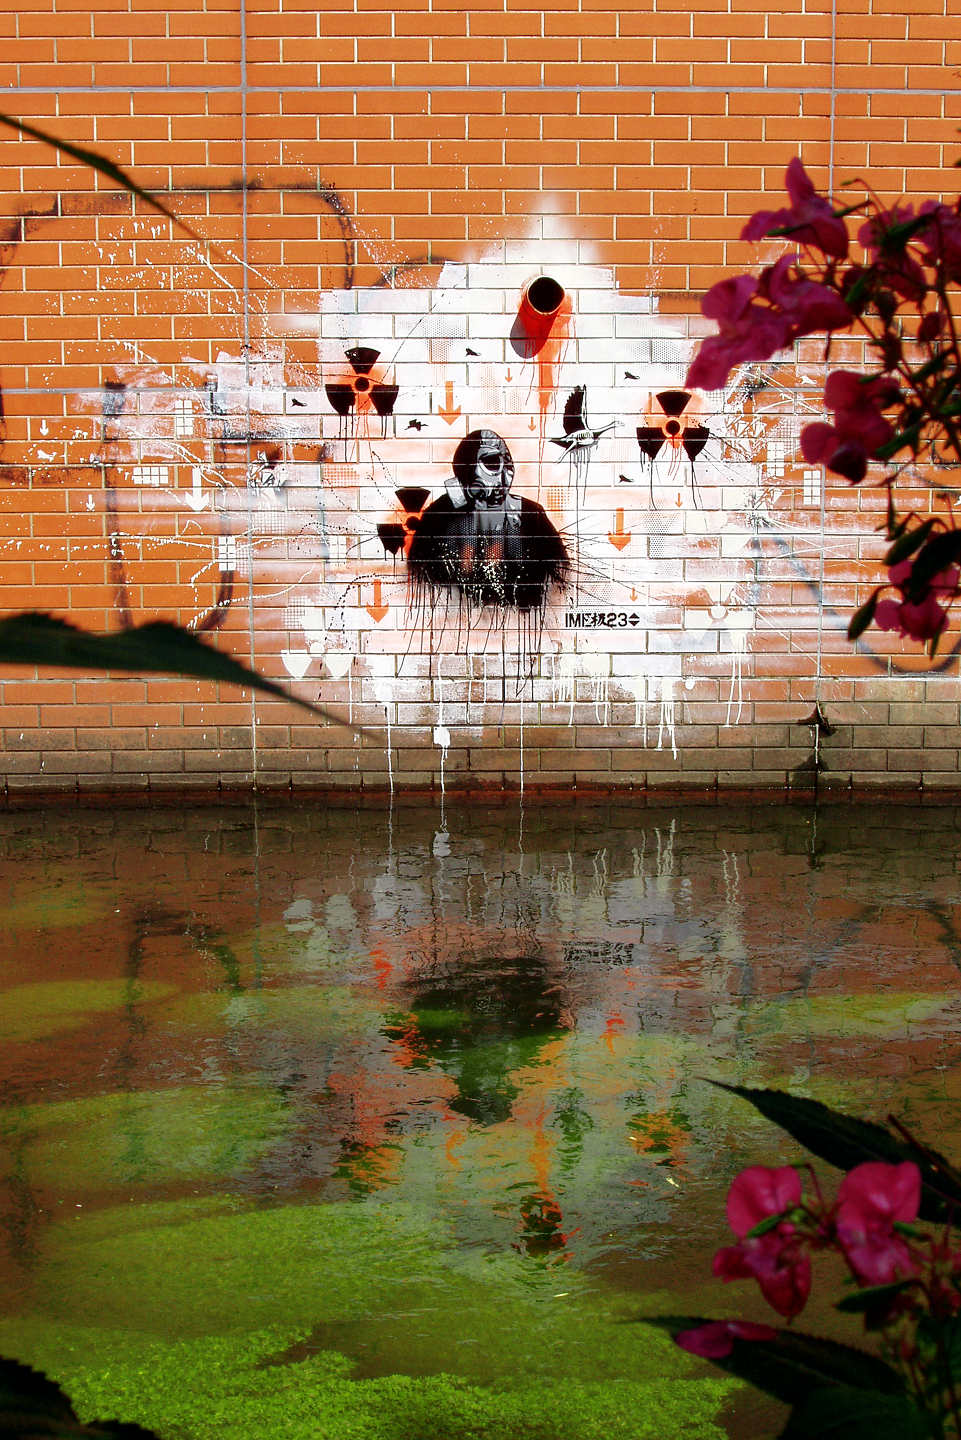 Street Art at the Panke in Berlin by Plotbot KEN